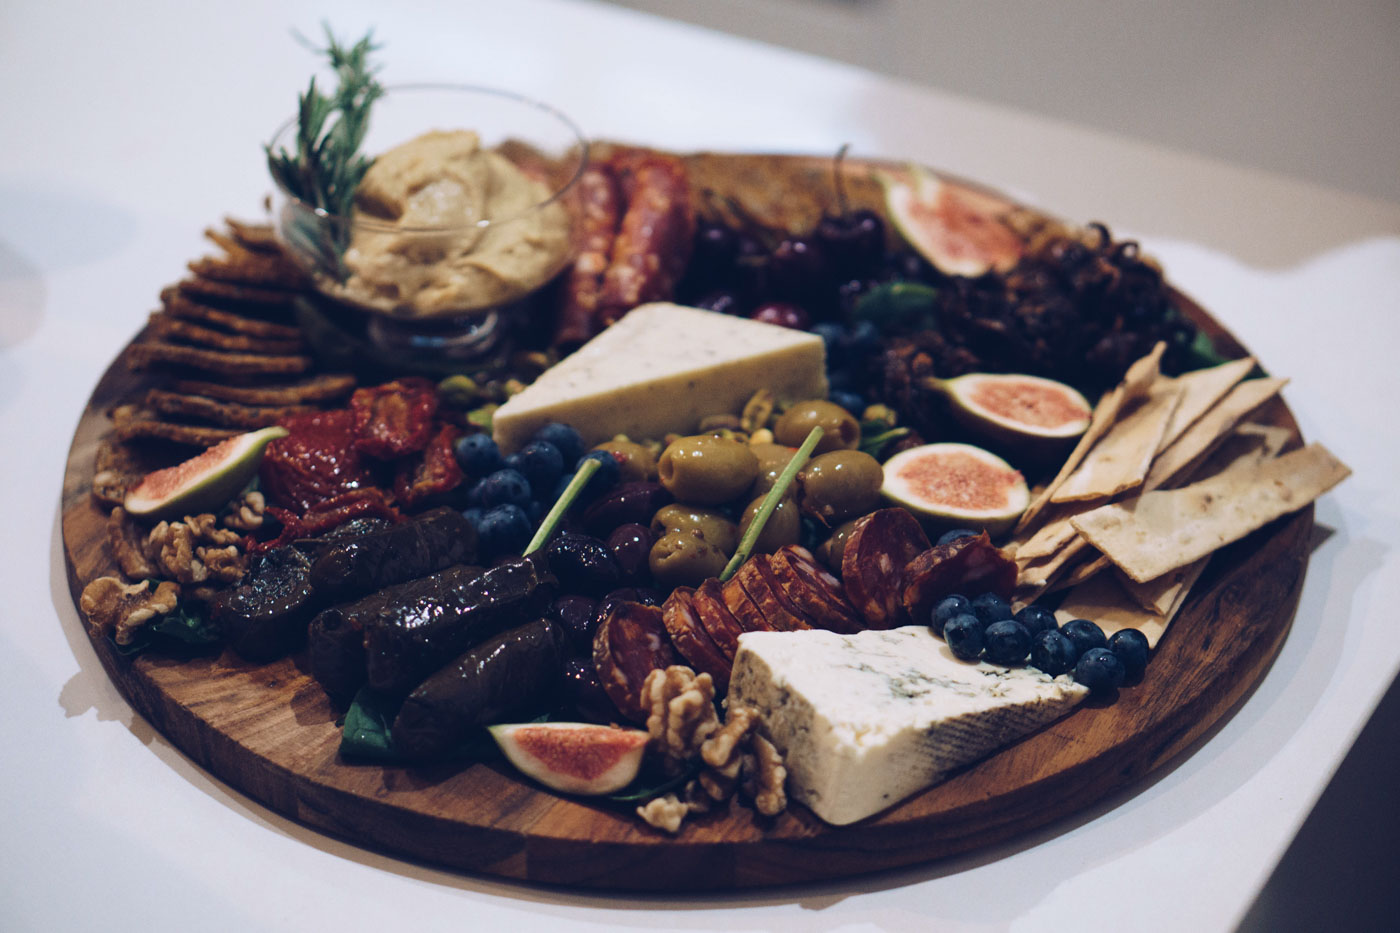 the_Collection_co_grazing_table_cairns_weddings_catering_small_platter-19-2.jpg